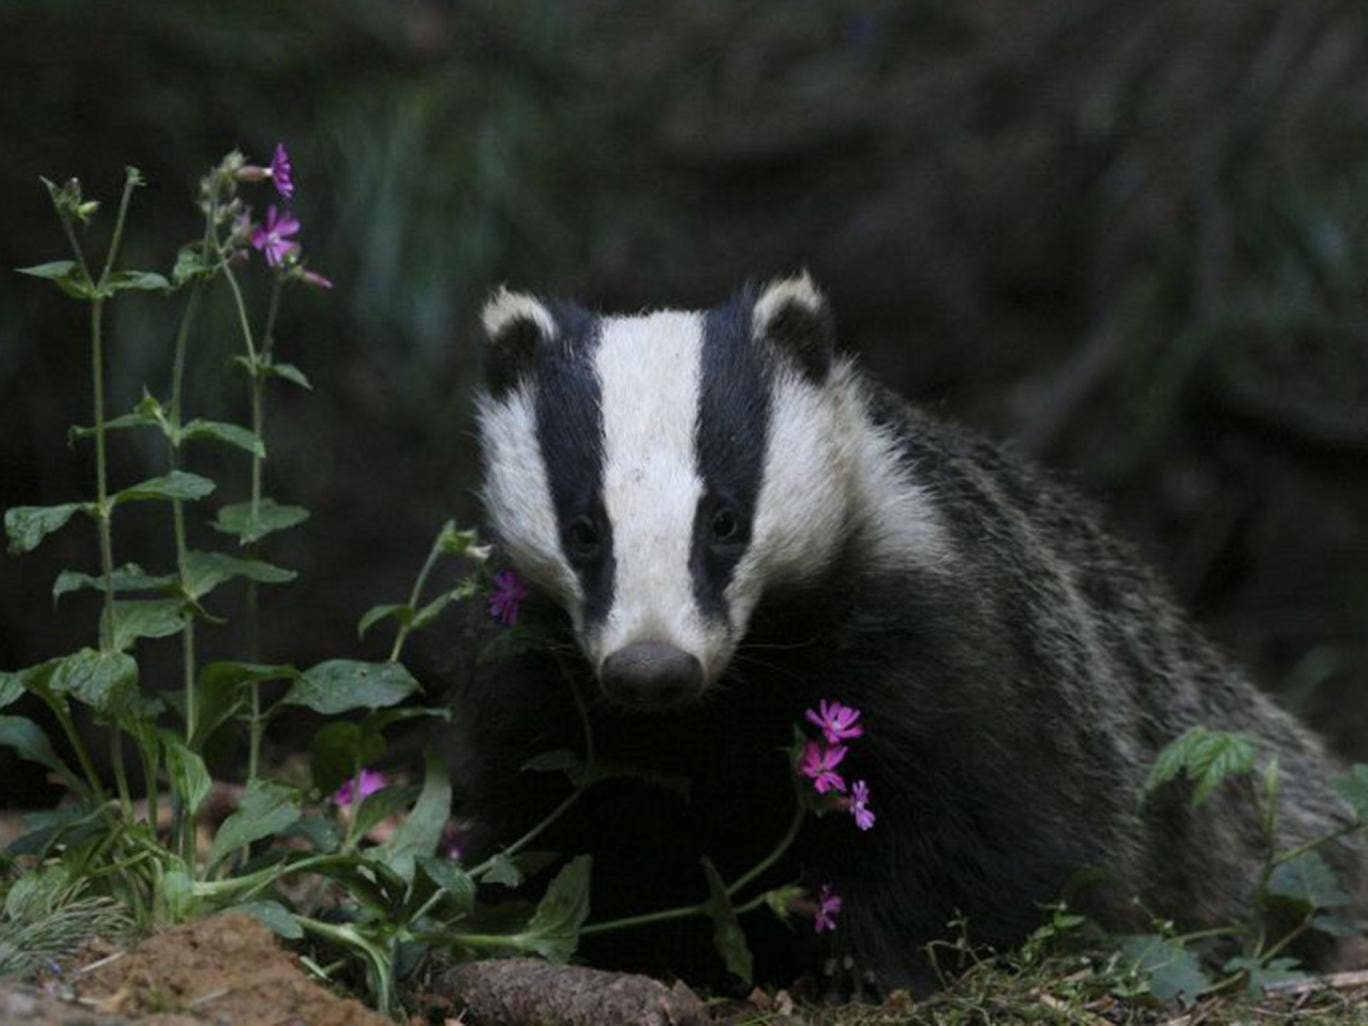 A report by the IEP raised concerns about the effectiveness of the culls and warned badgers were suffering slow deaths after being shot